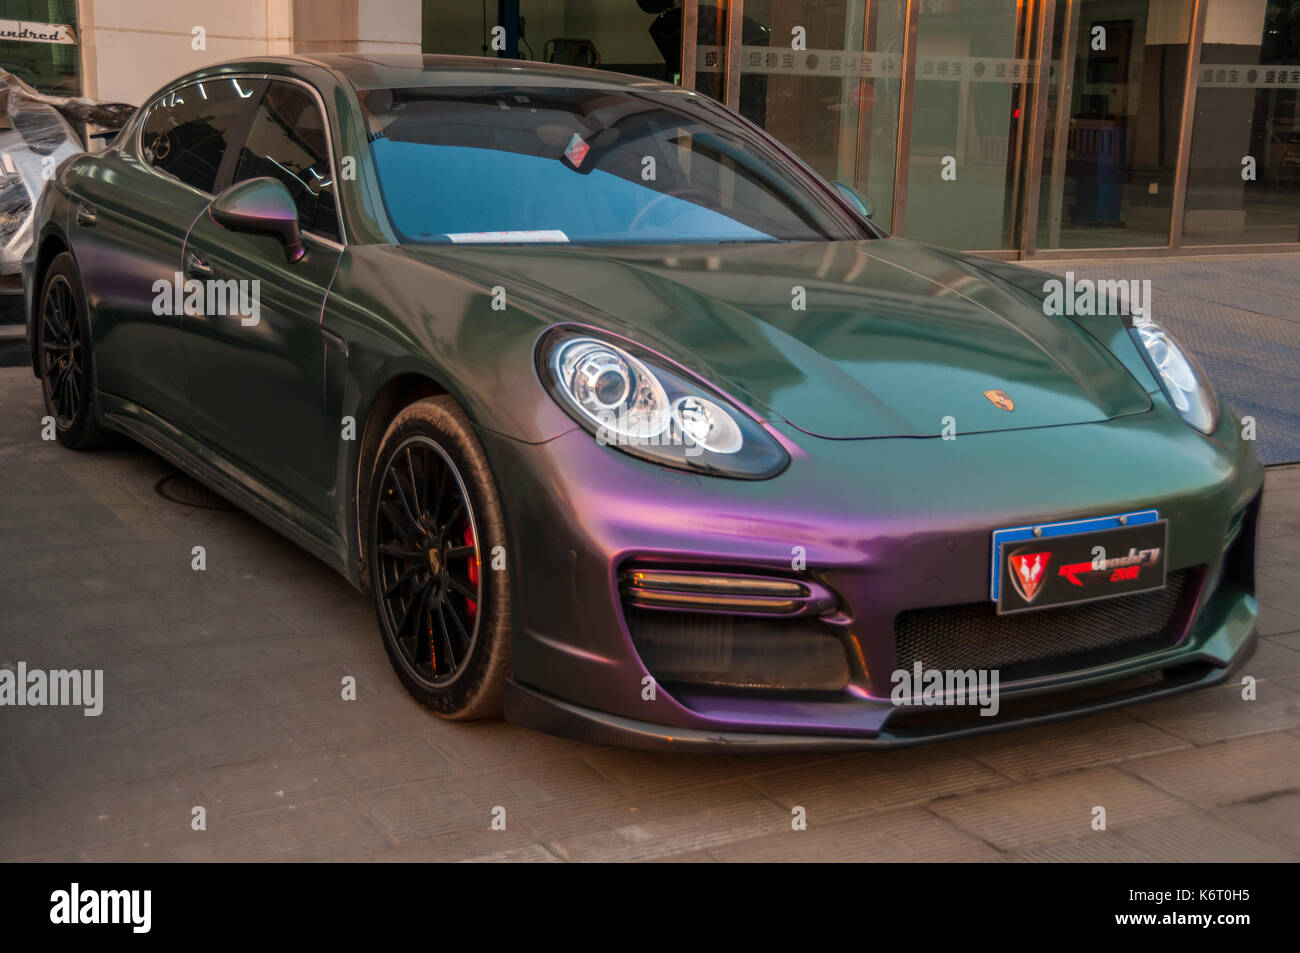 porsche tuning photos porsche tuning images alamy. Black Bedroom Furniture Sets. Home Design Ideas